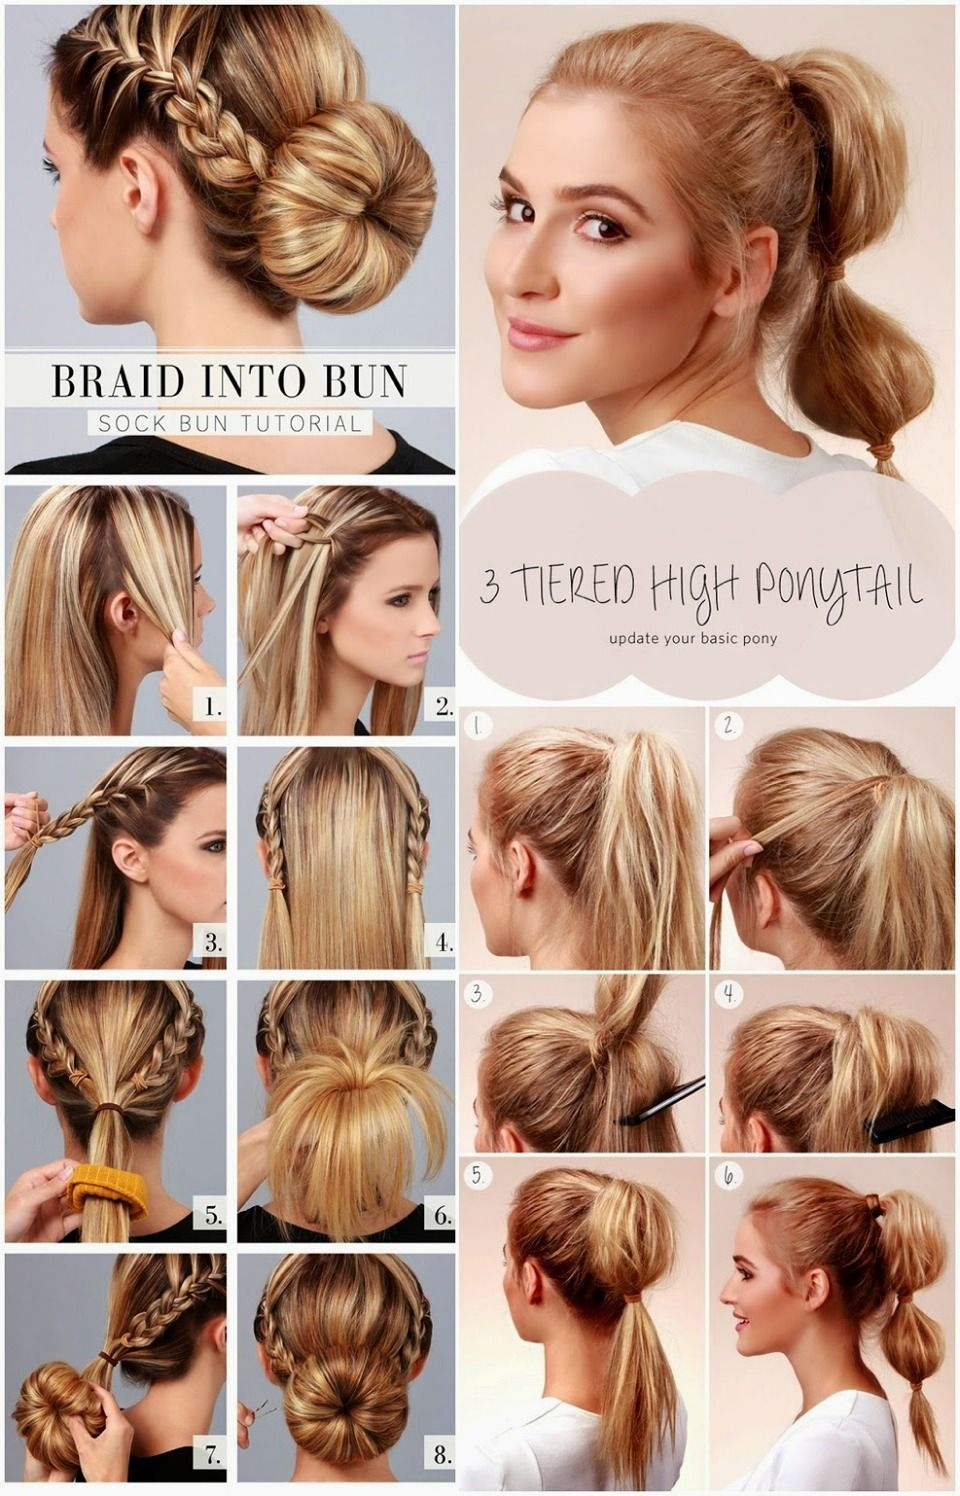 4 Cute Hairstyles To Wear This Summer! ☀️  Cute hairstyles